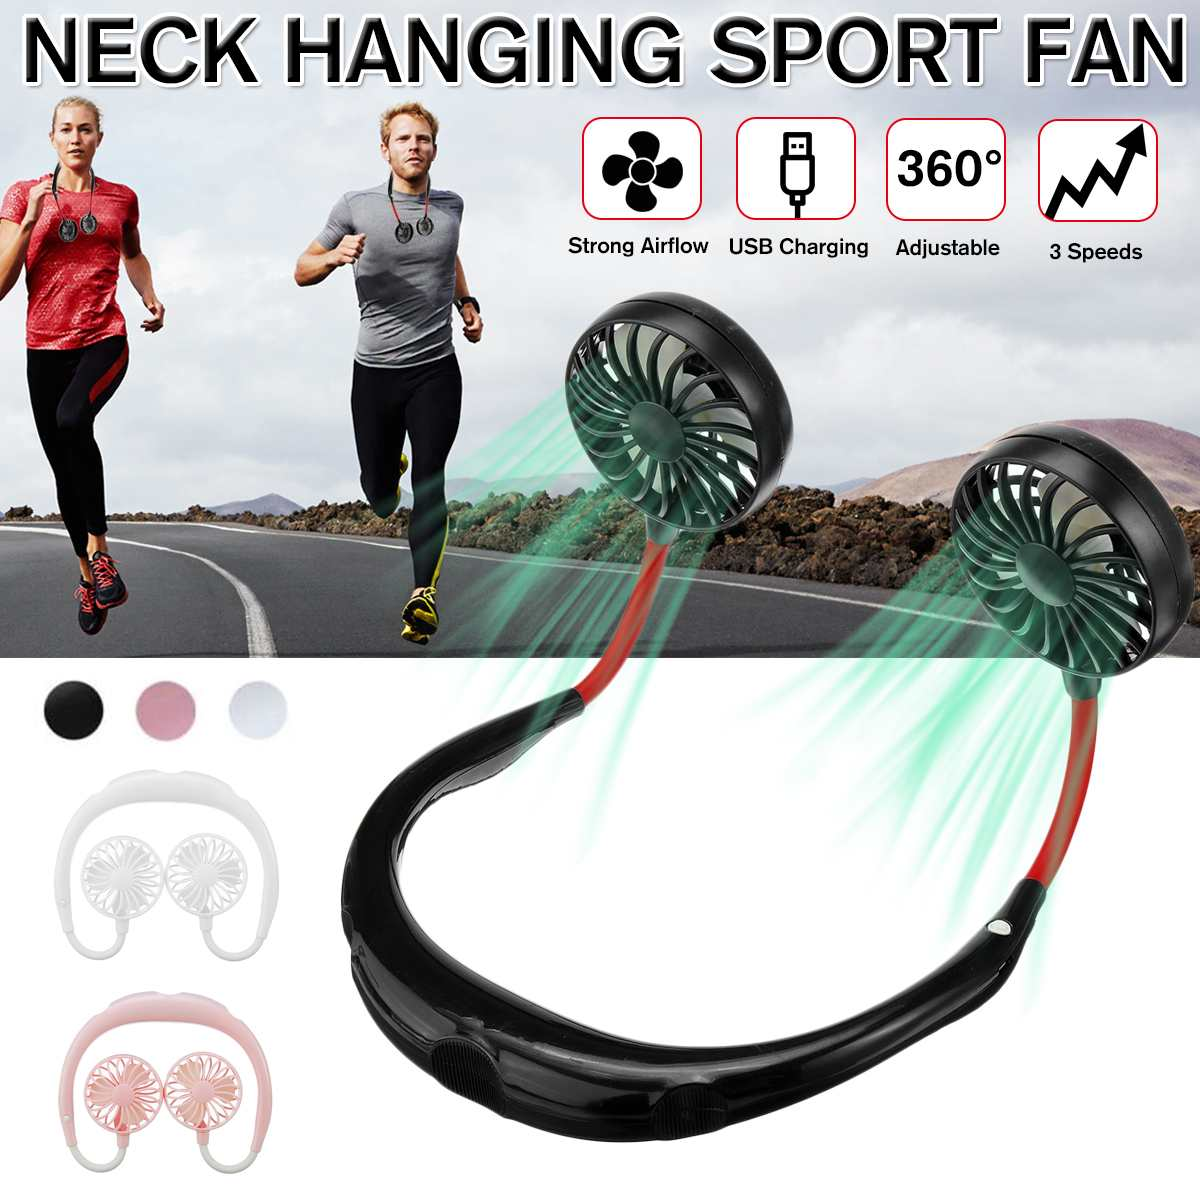 USB Rechargeable Wearable Hand Free Neckband Double Fan Personal Neck Fans 3 Speed Adjustable Portable Sport Fan